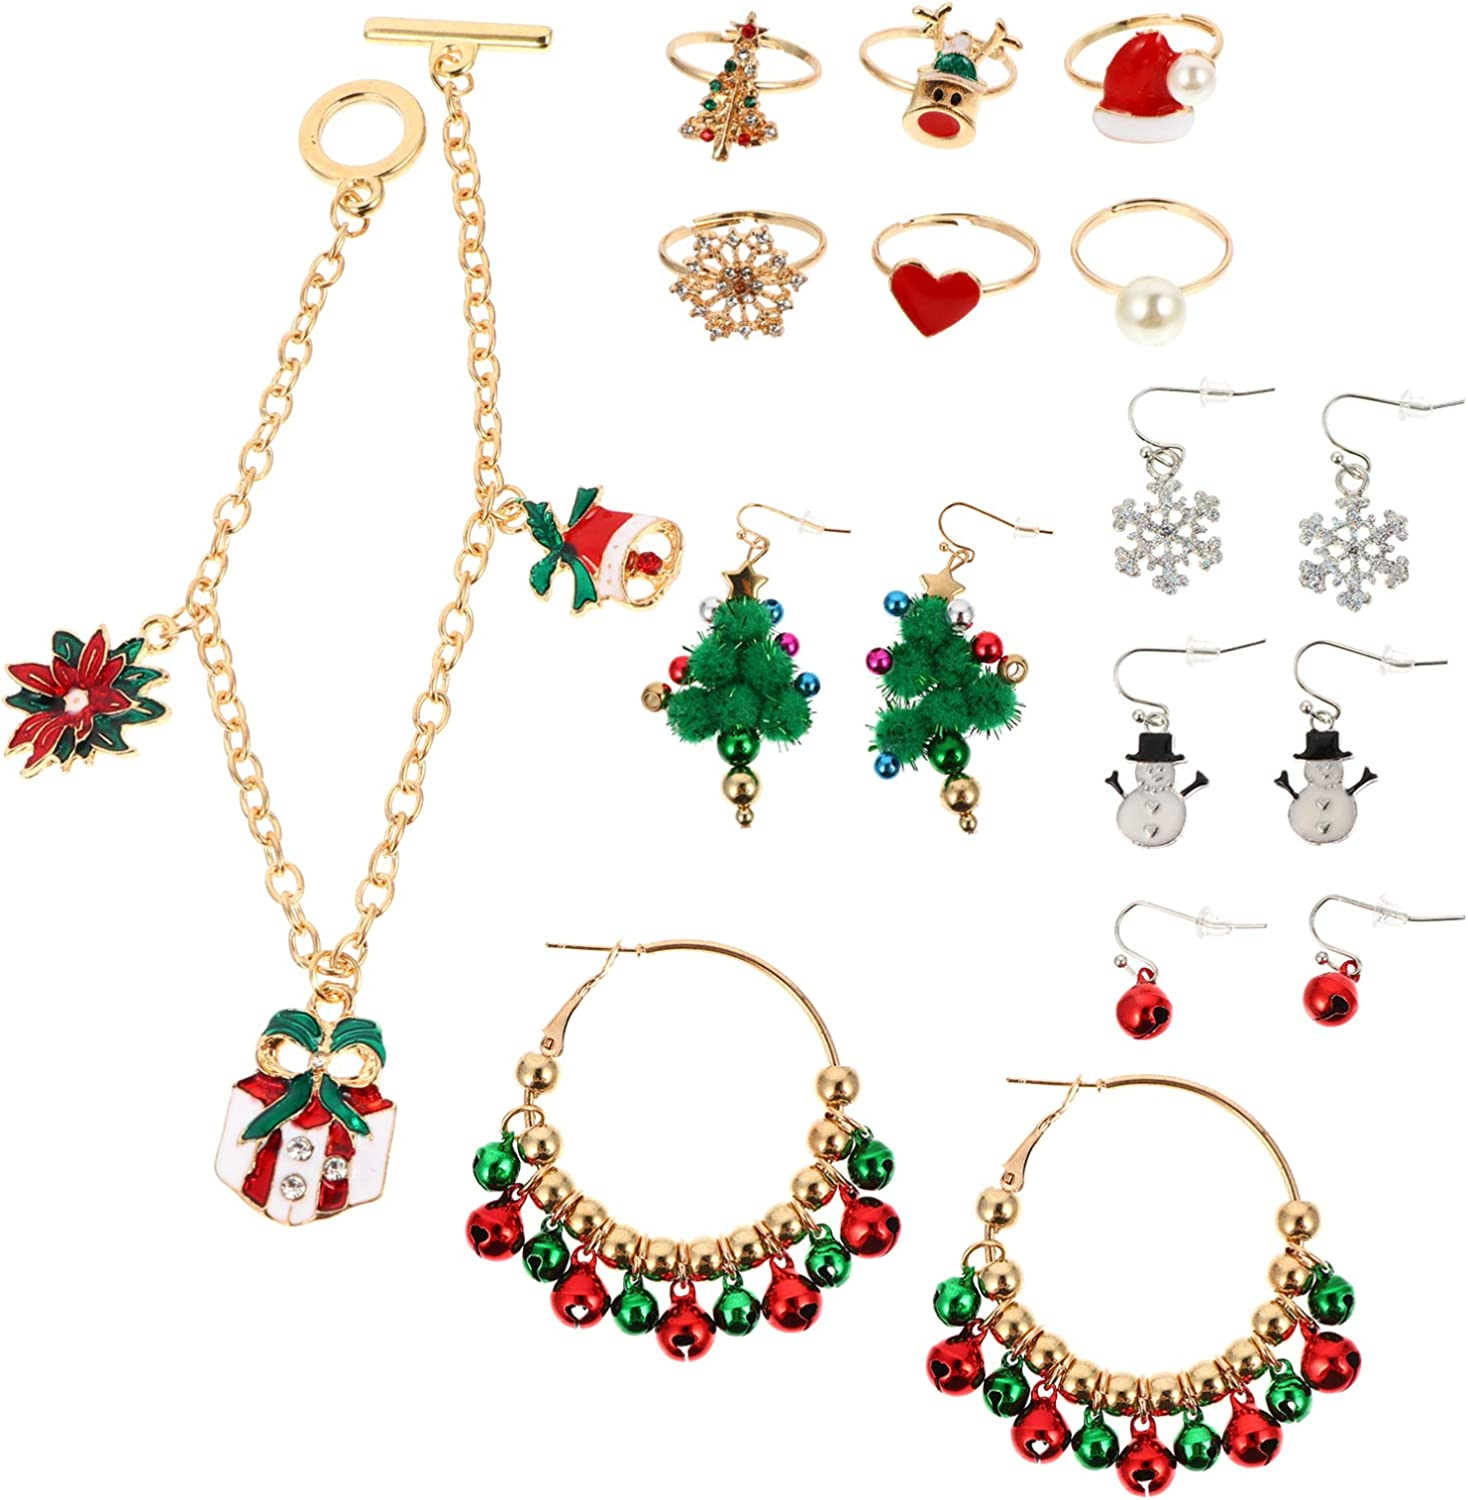 NUOBESTY 5 Sets of Christmas Jingle Bell Jewelry Set Rings Bracelet Dangle Earrings Christmas Costume Jewelry Set for Christmas Party Favors